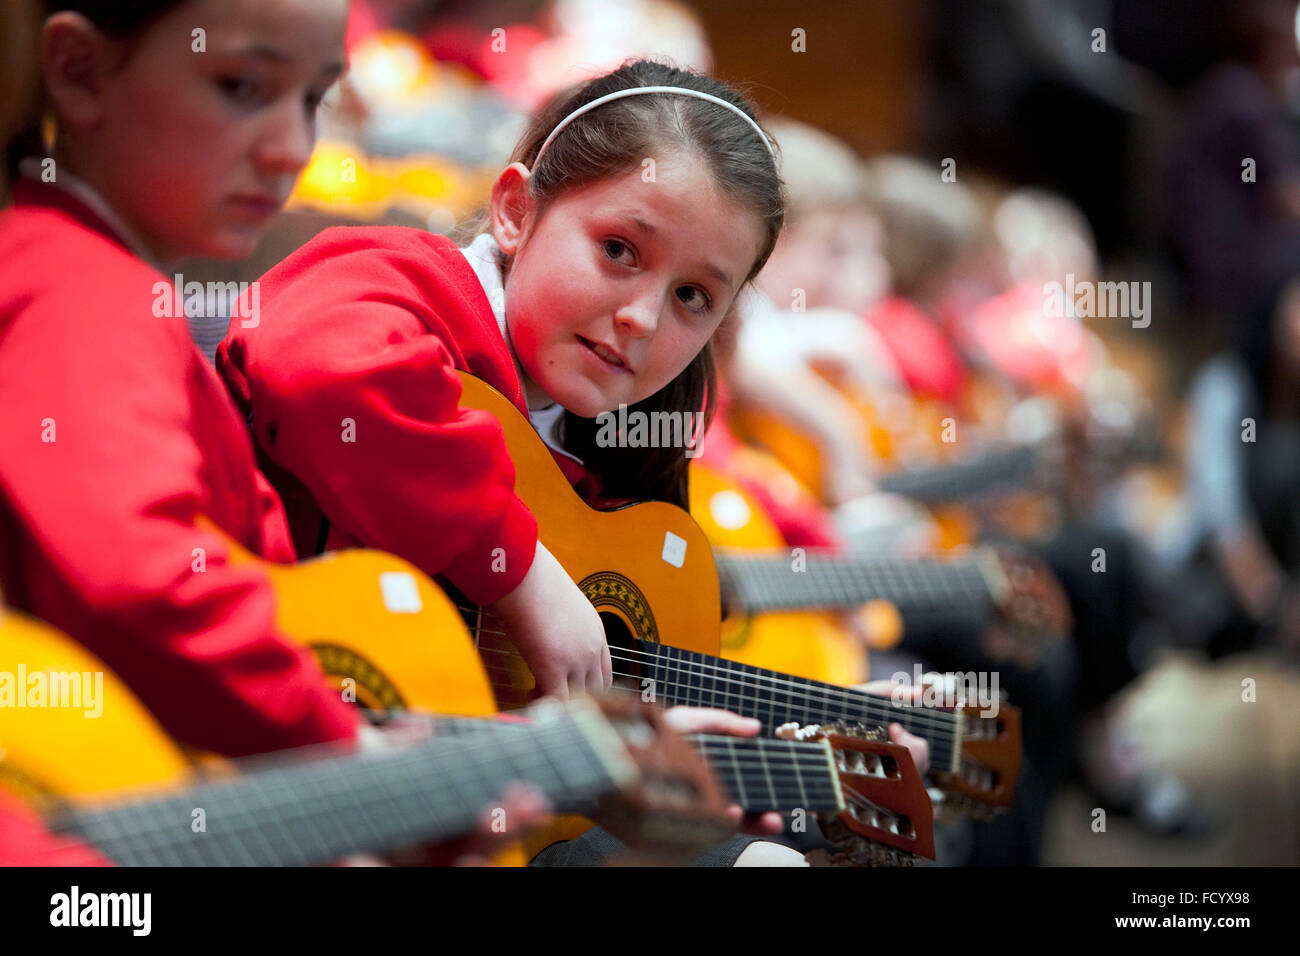 Primary school pupils take part in a guitar concert at the Bridgewater Hall , Manchester - Stock Image